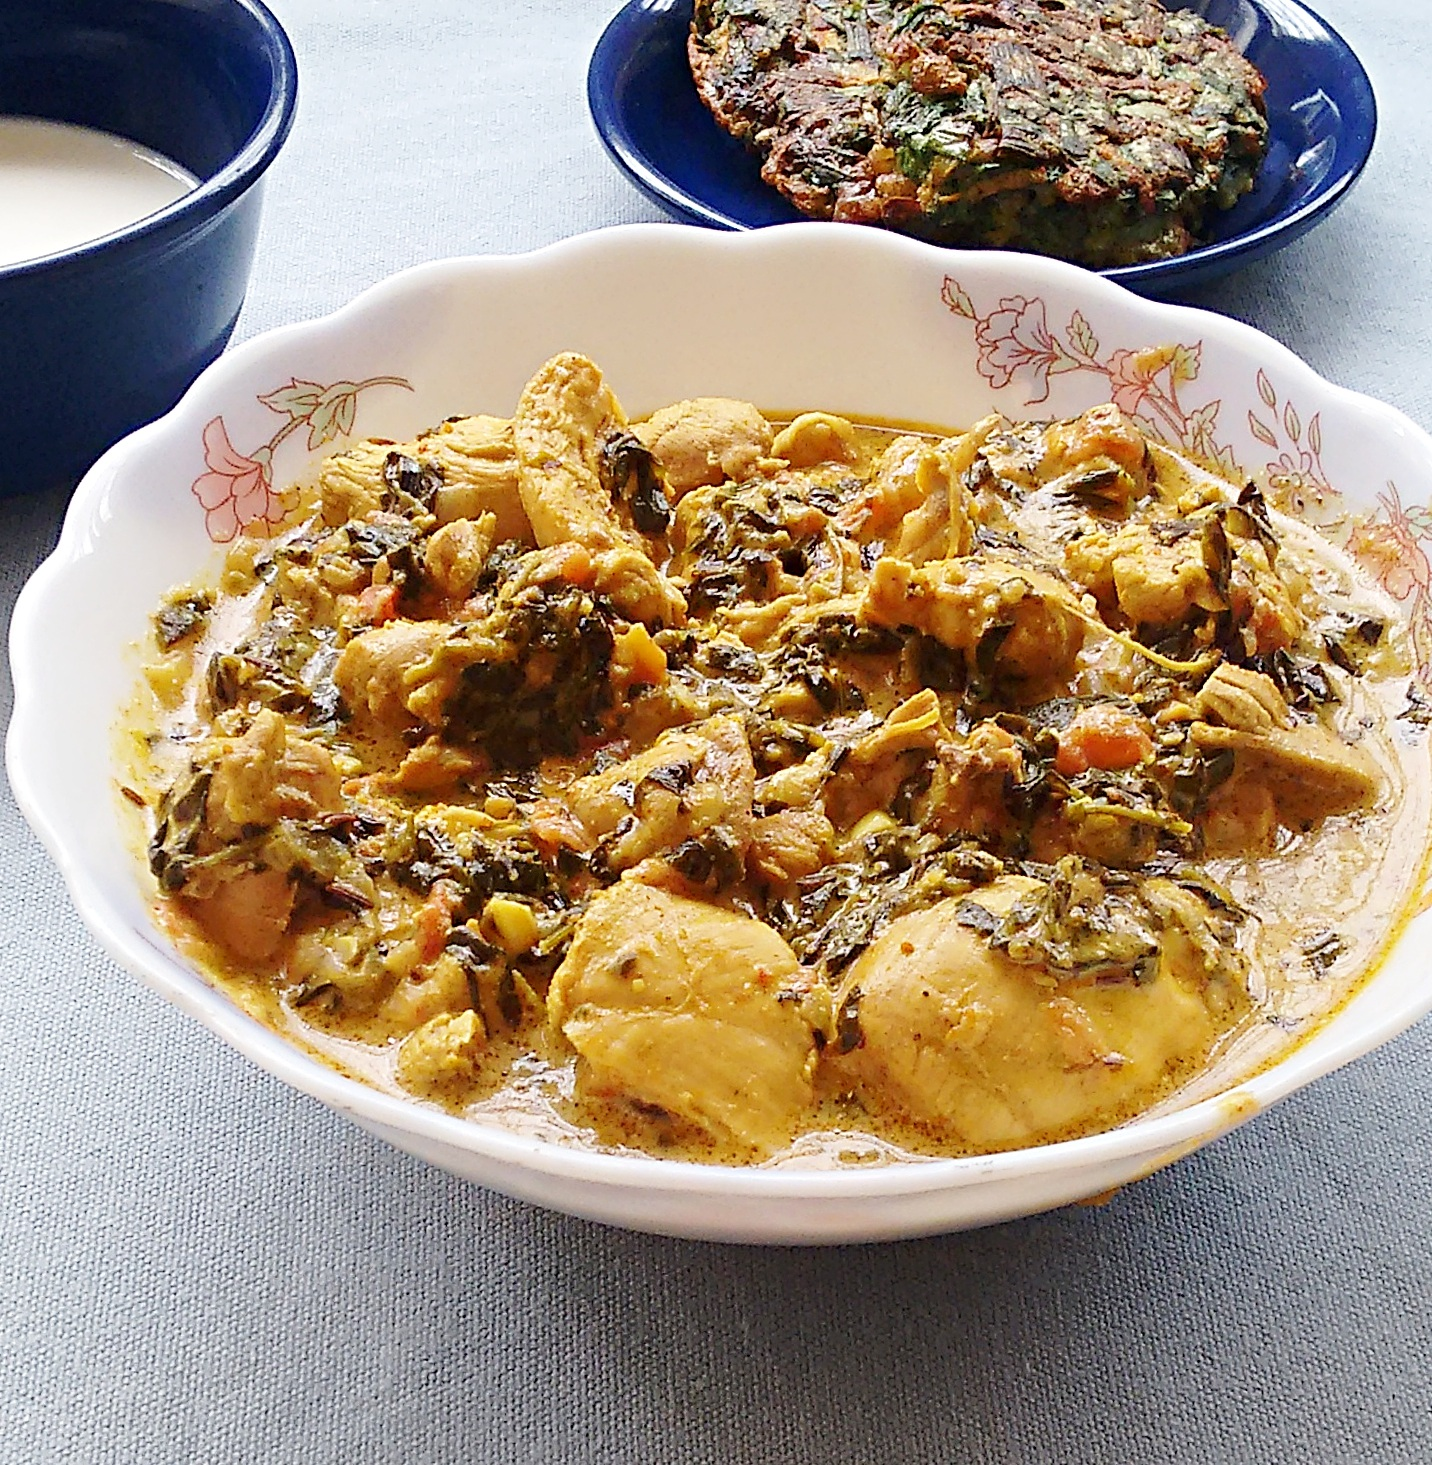 murgh methi recipe - chicken curry with fenugreek leaves